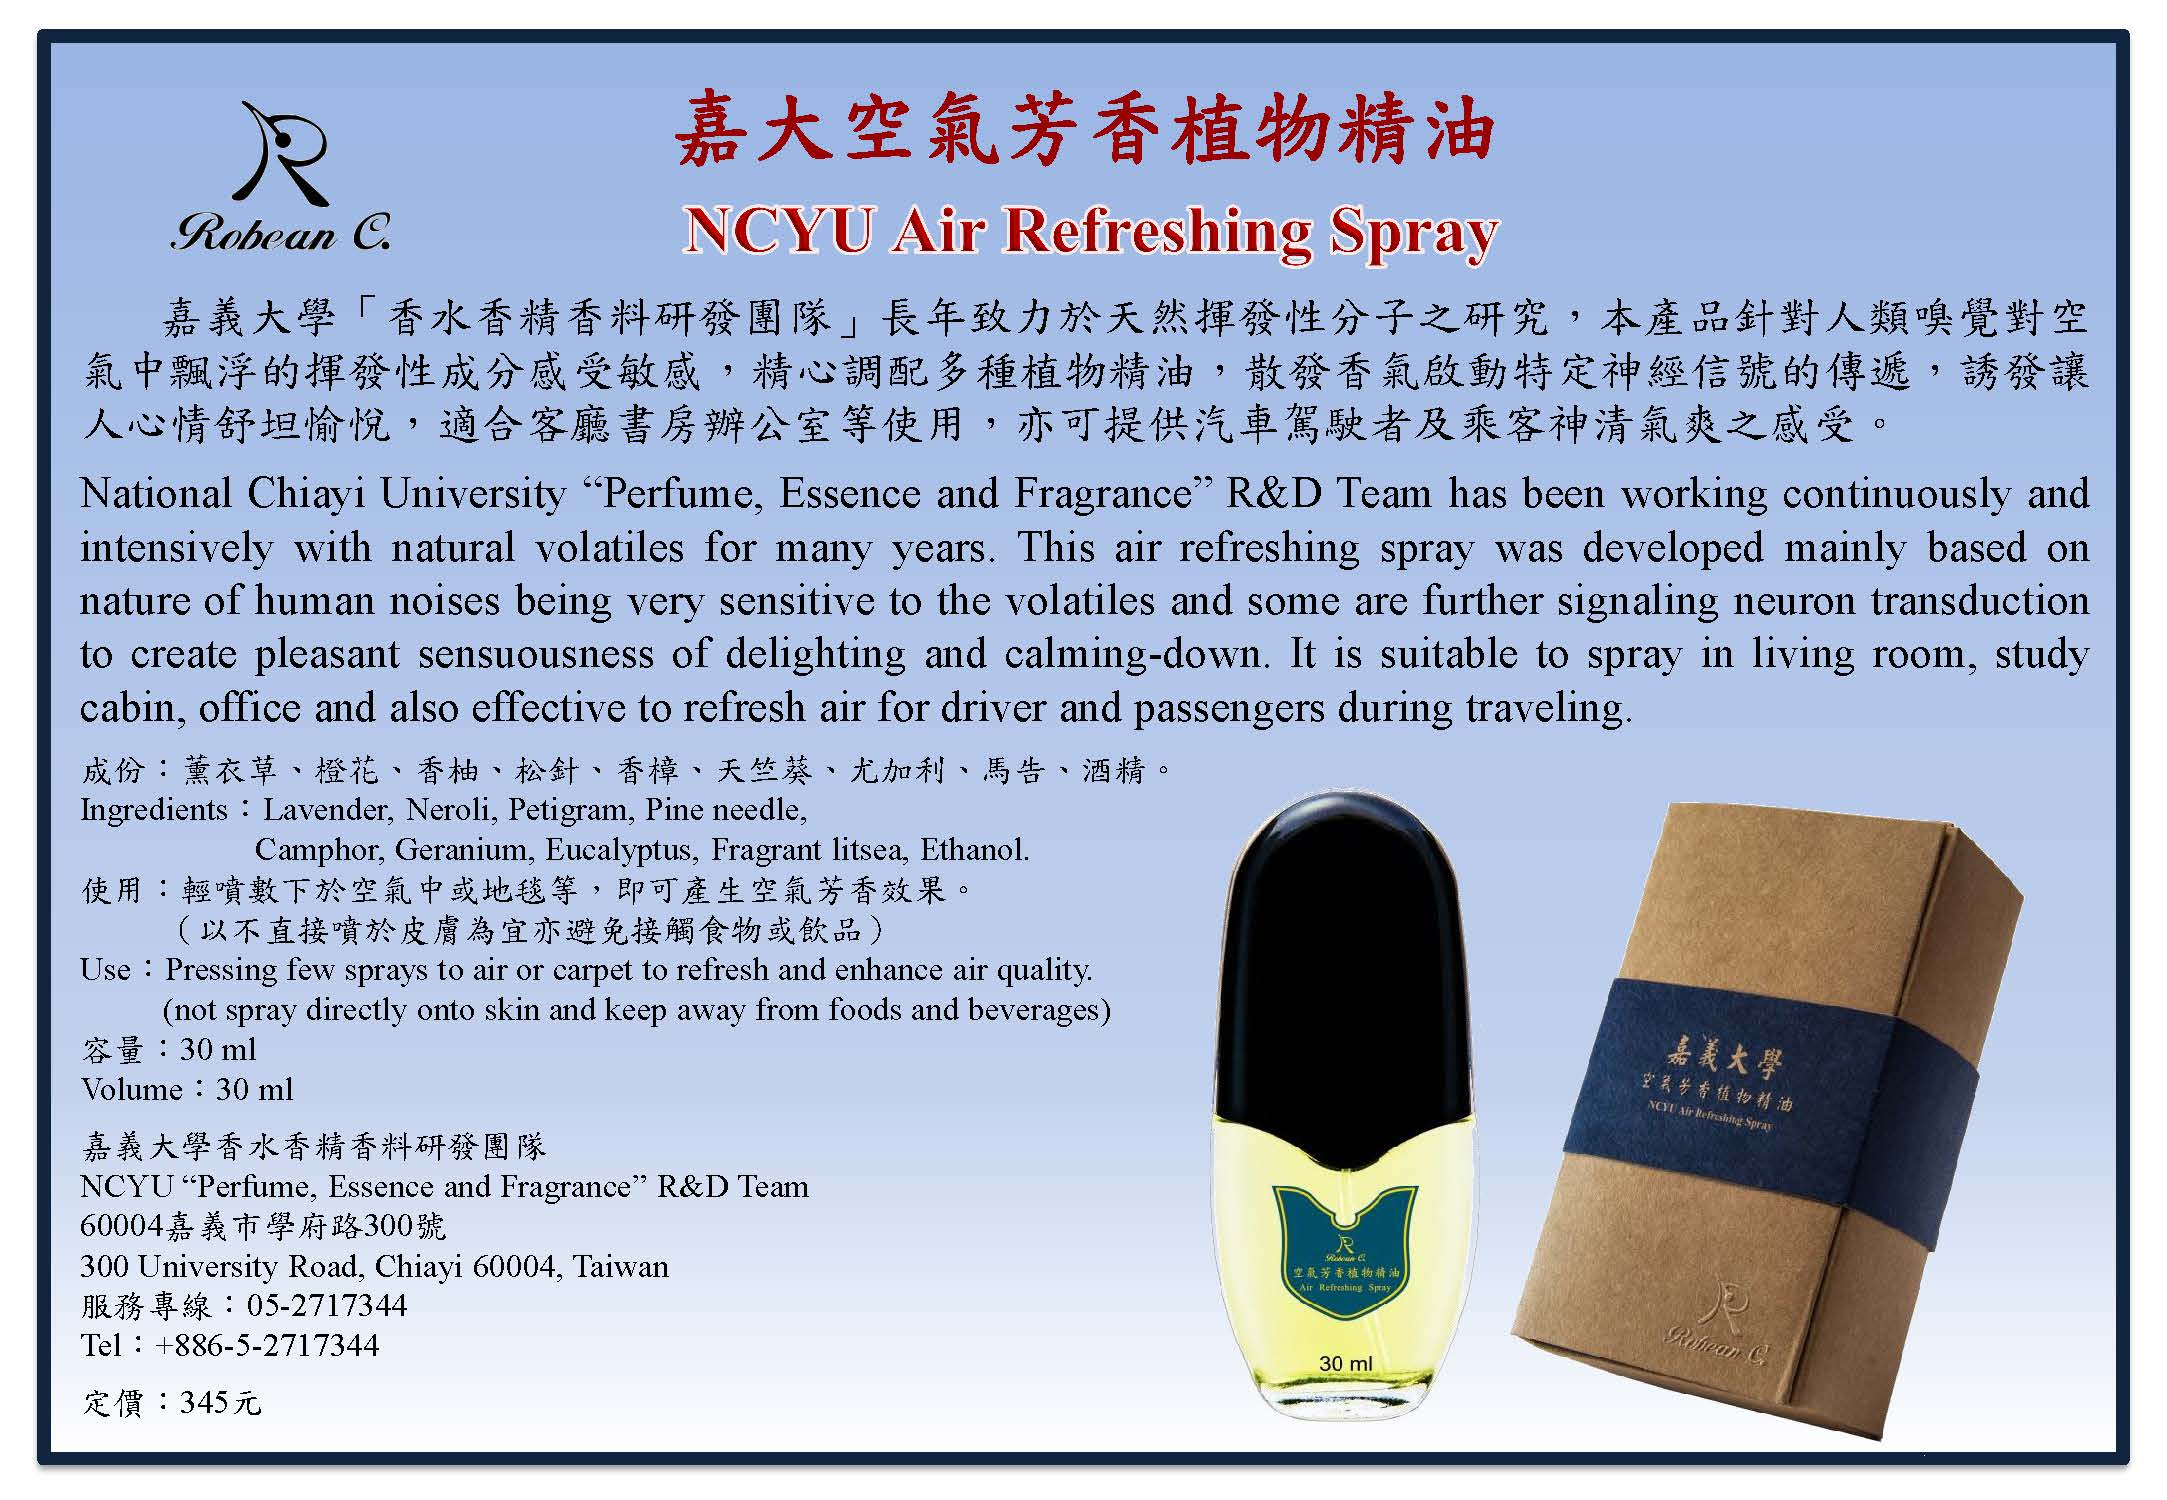 NCYU Air Refreshing Spray